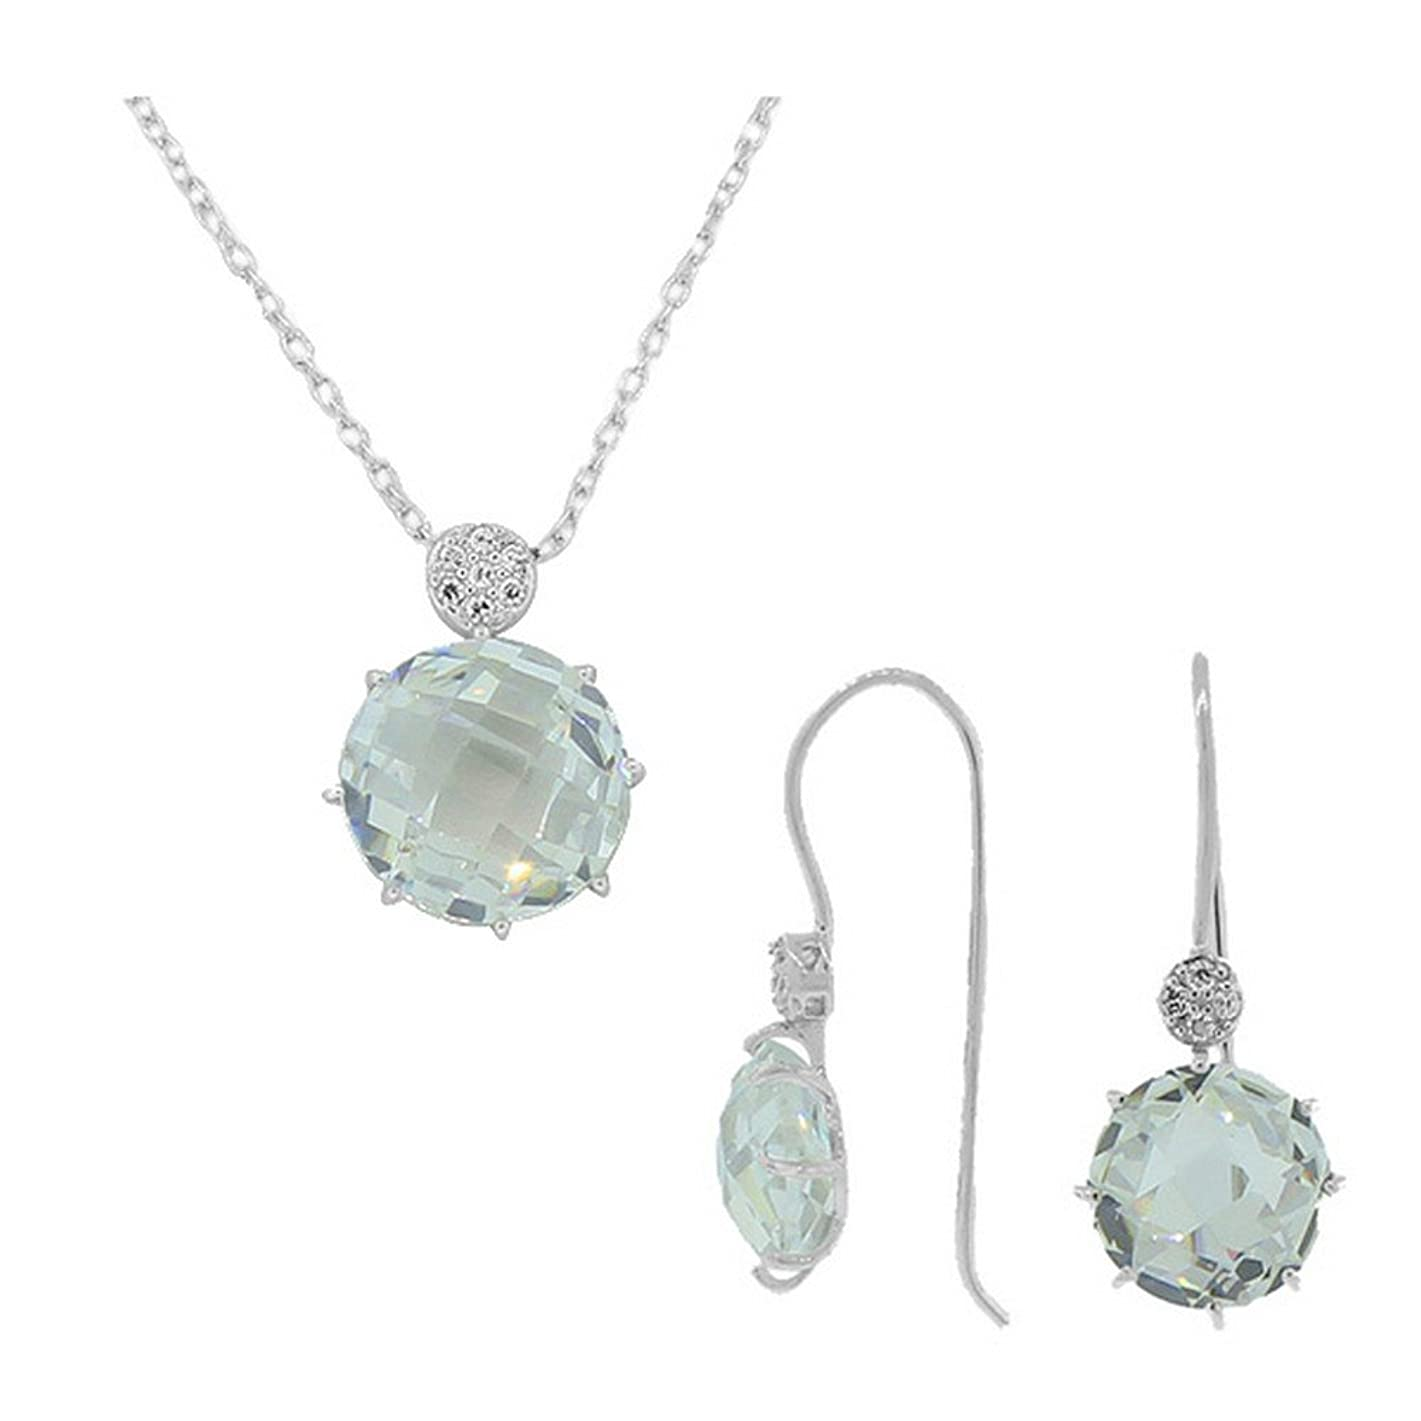 925 Sterling Silver White CZ Charm Pendant Necklace Earrings Set